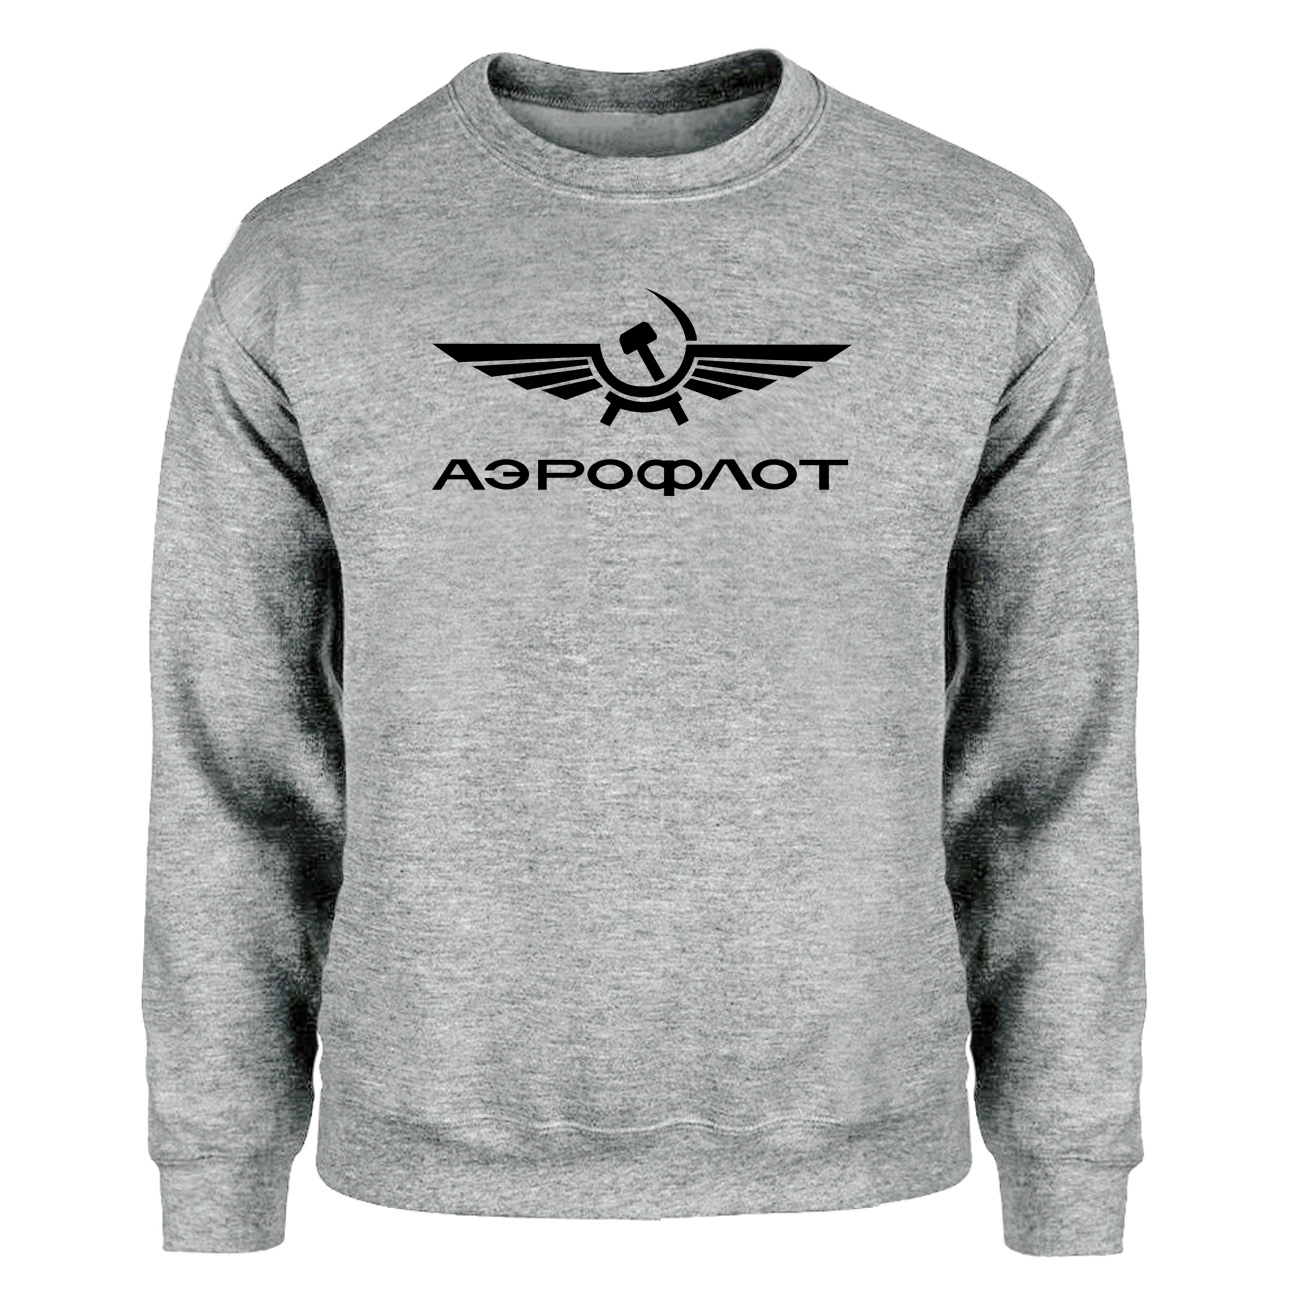 Aeroflot CCCP Civil Aviation USSR RUSSIA AIRFORCE Hoodies Sweatshirt Men Crewneck Sweatshirts Winter Autumn Fleece Sportswear